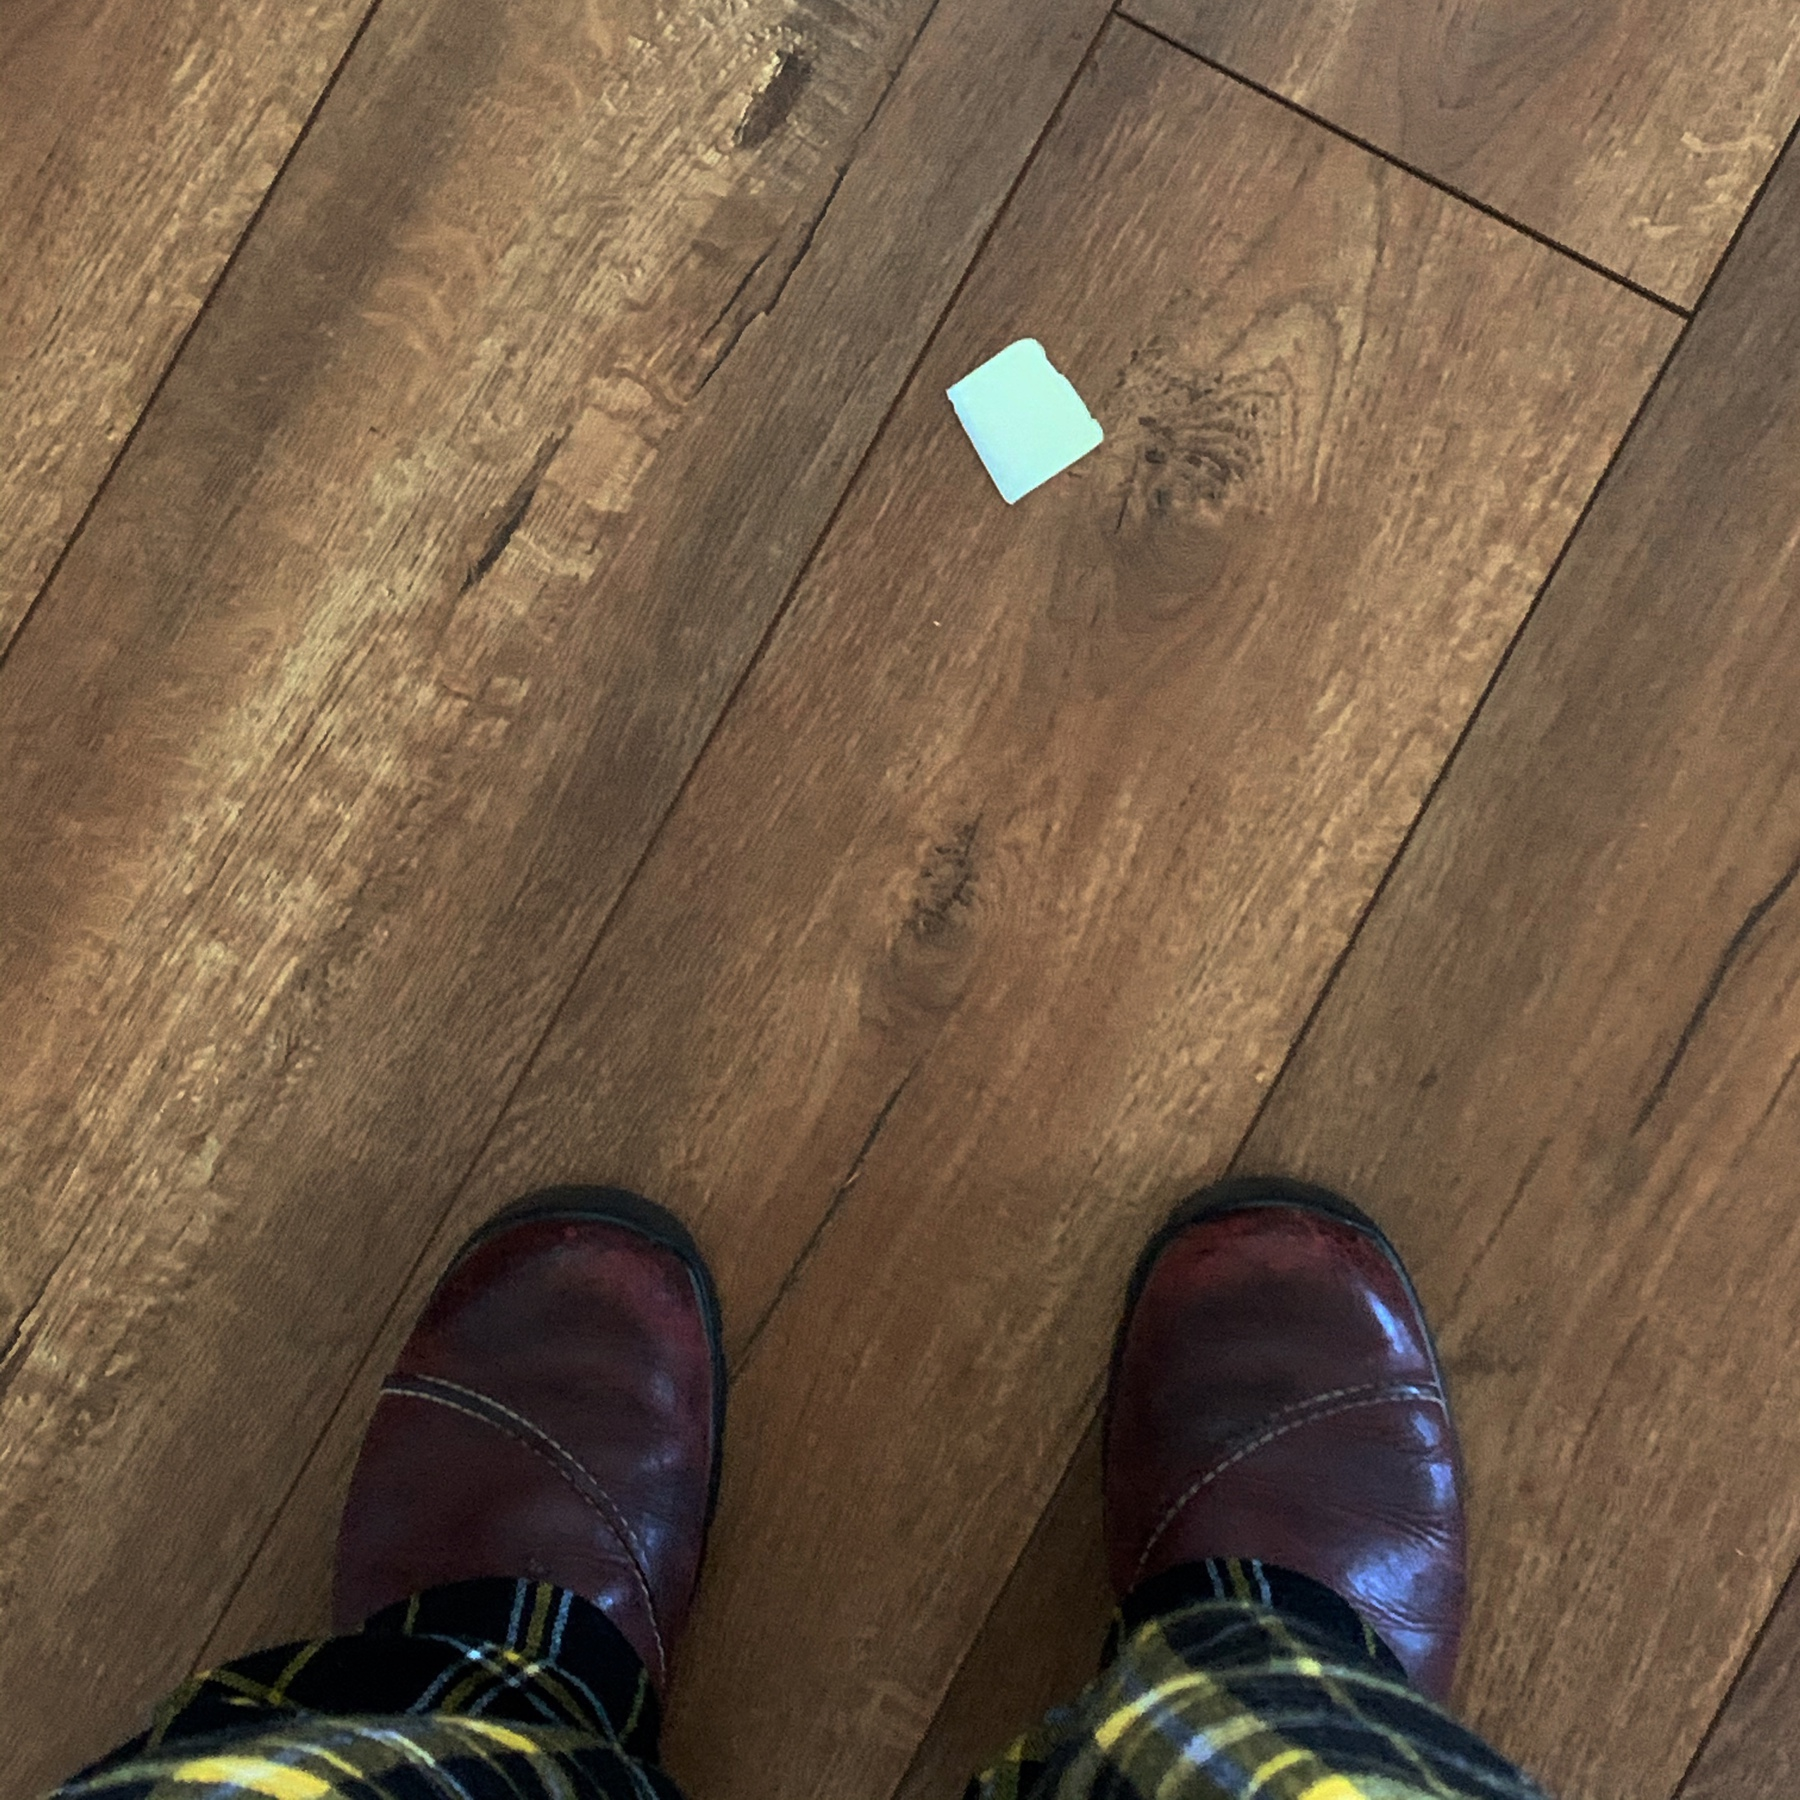 a pat of butter fell to the floor, this is my view of it